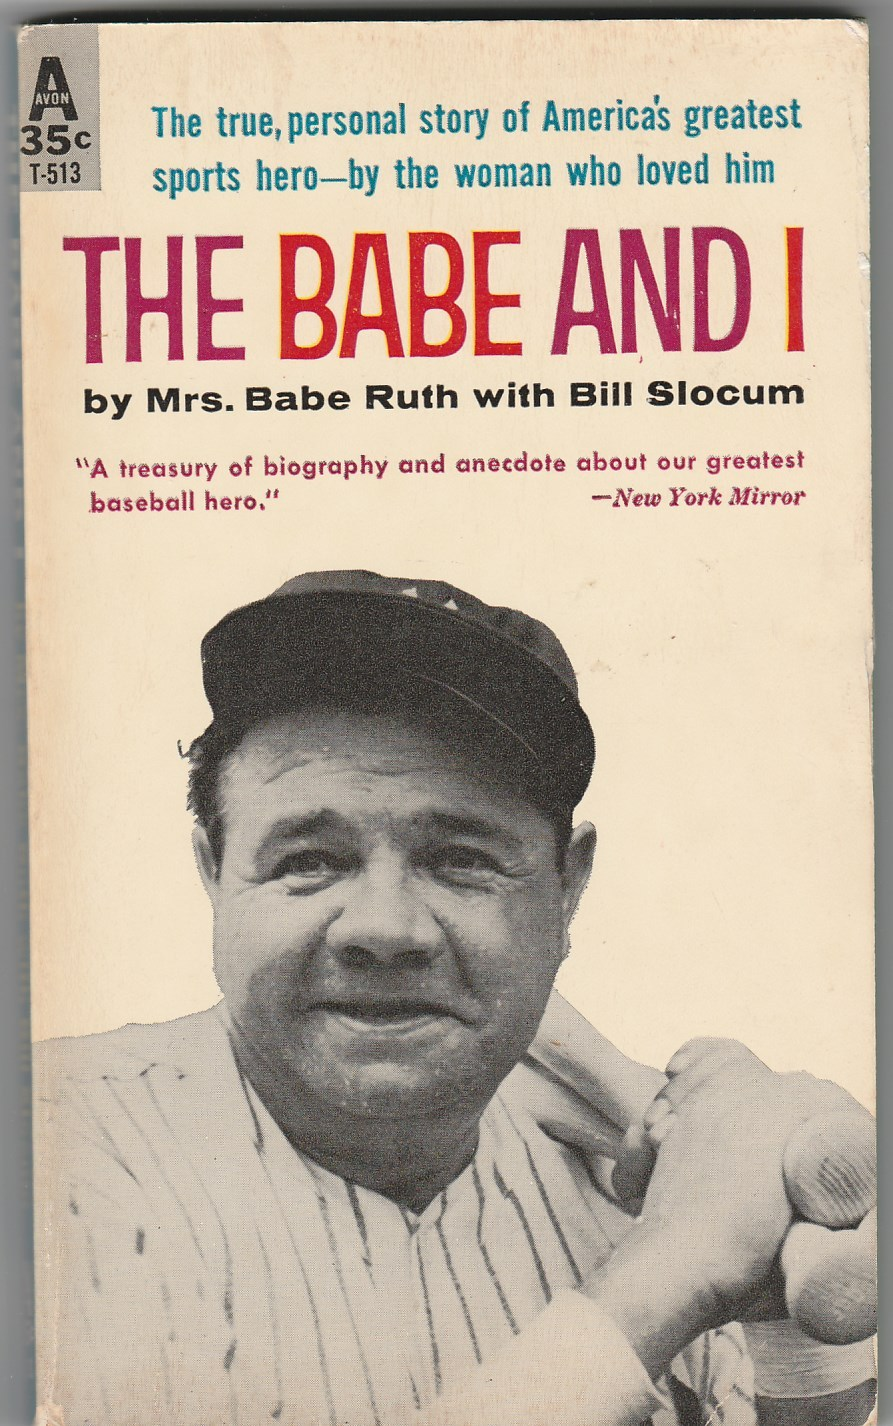 Primary image for THE BABE AND I by Mrs. Babe Ruth 1961 illustrated pb bio